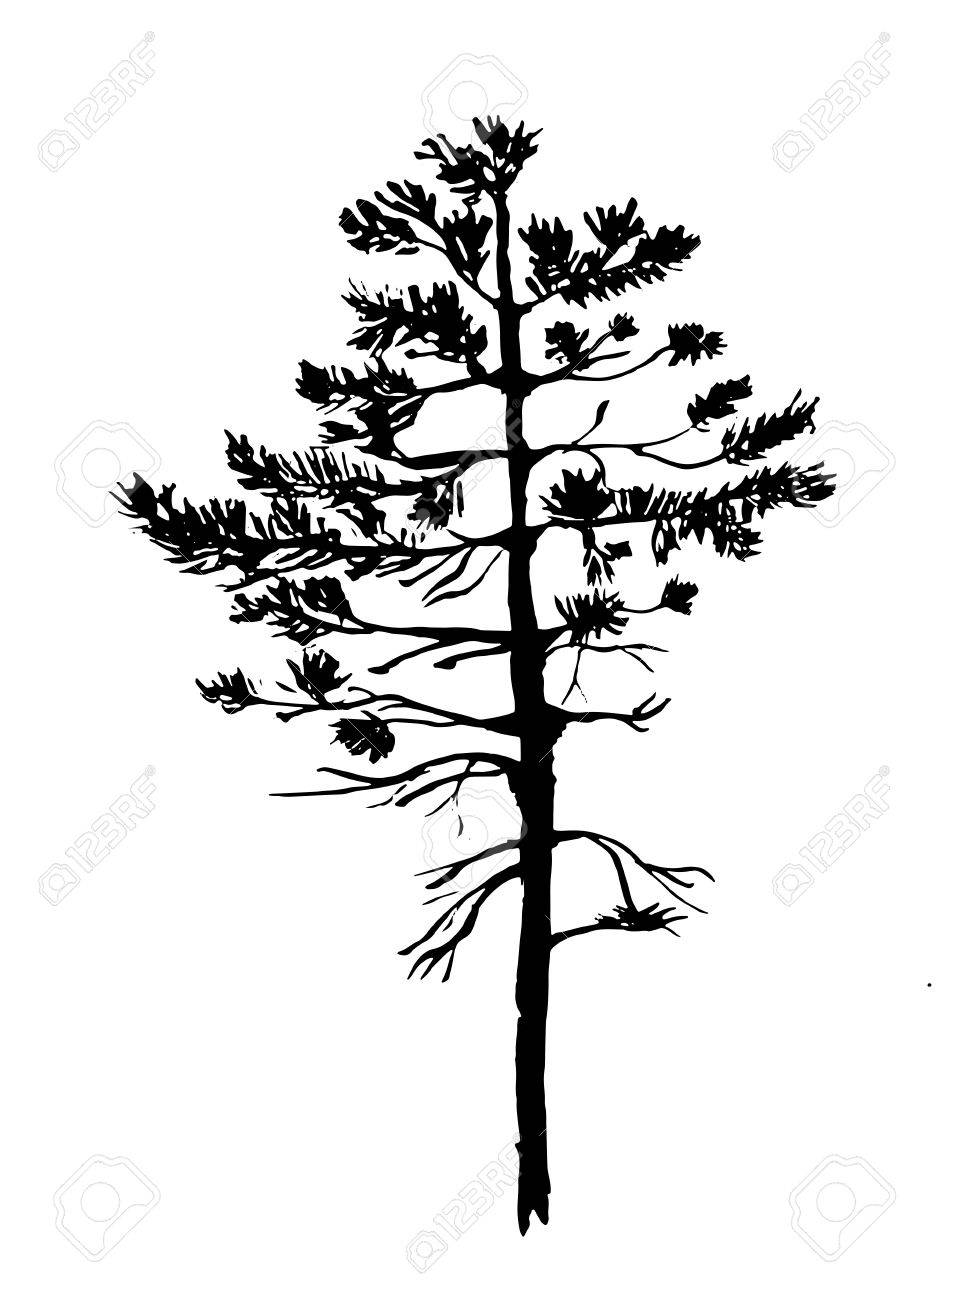 979x1300 Young Pine Tree With Needles Sketch Graphics Vector Illustration